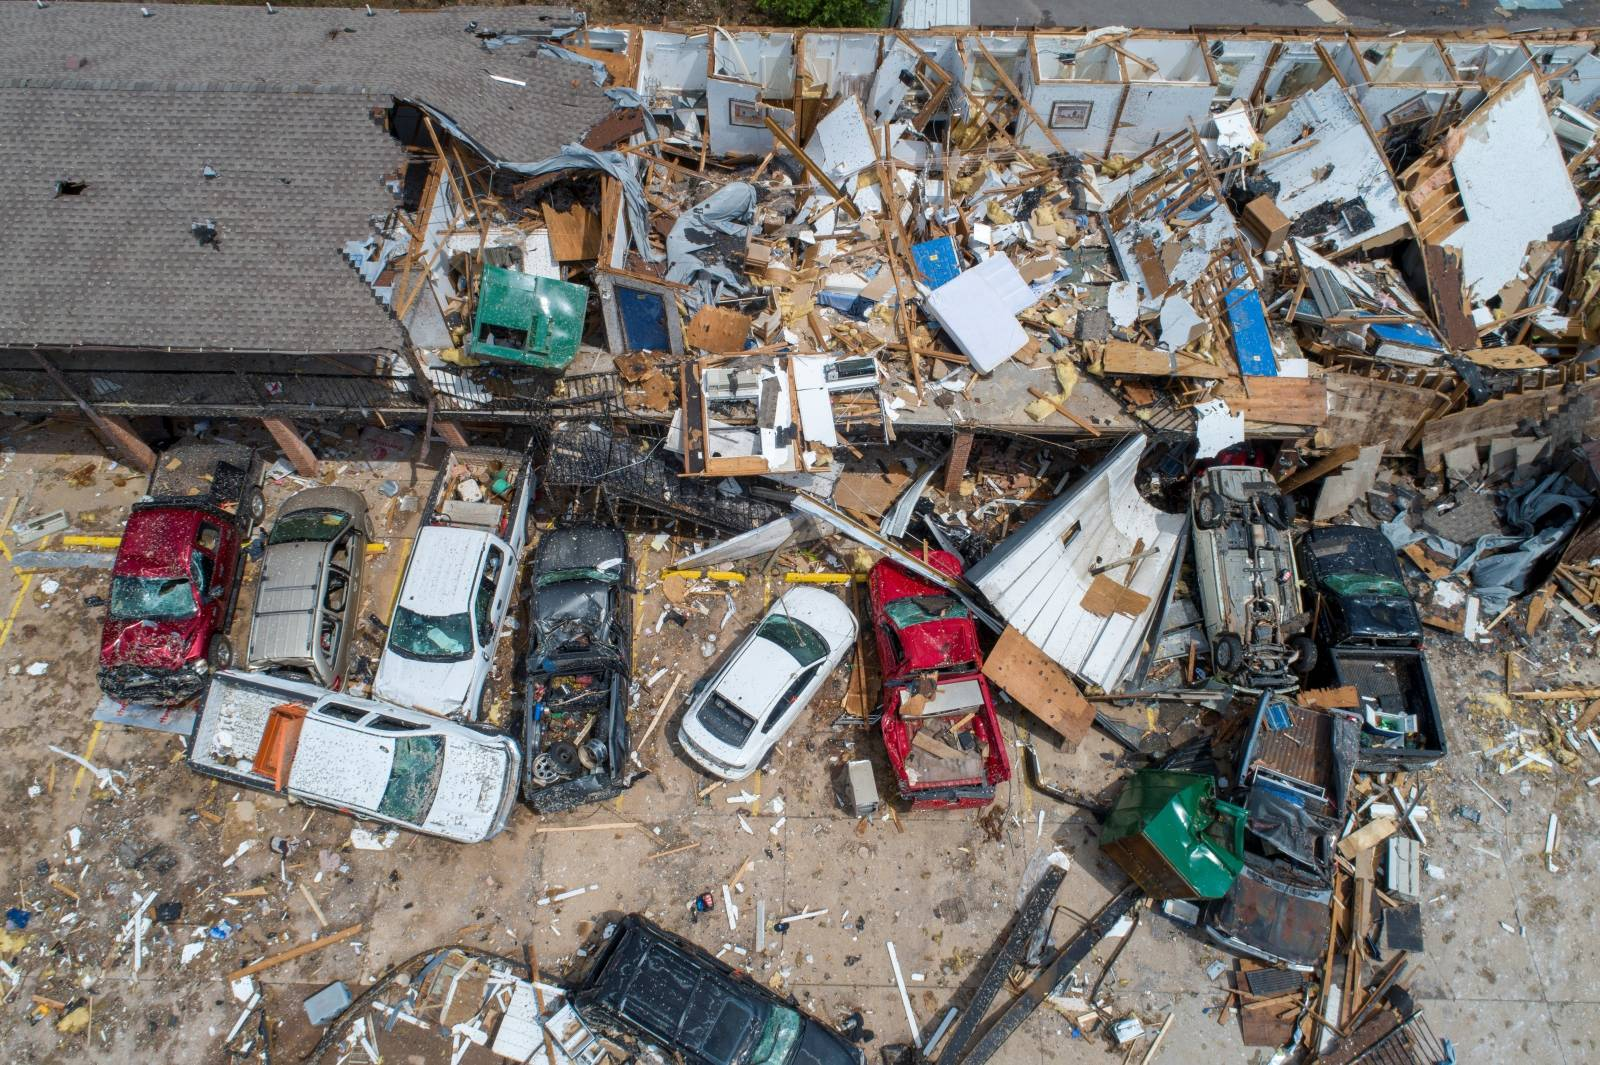 Damage to the American Budget Value Inn is seen in an aerial photo after a tornado touched down overnight in El Reno